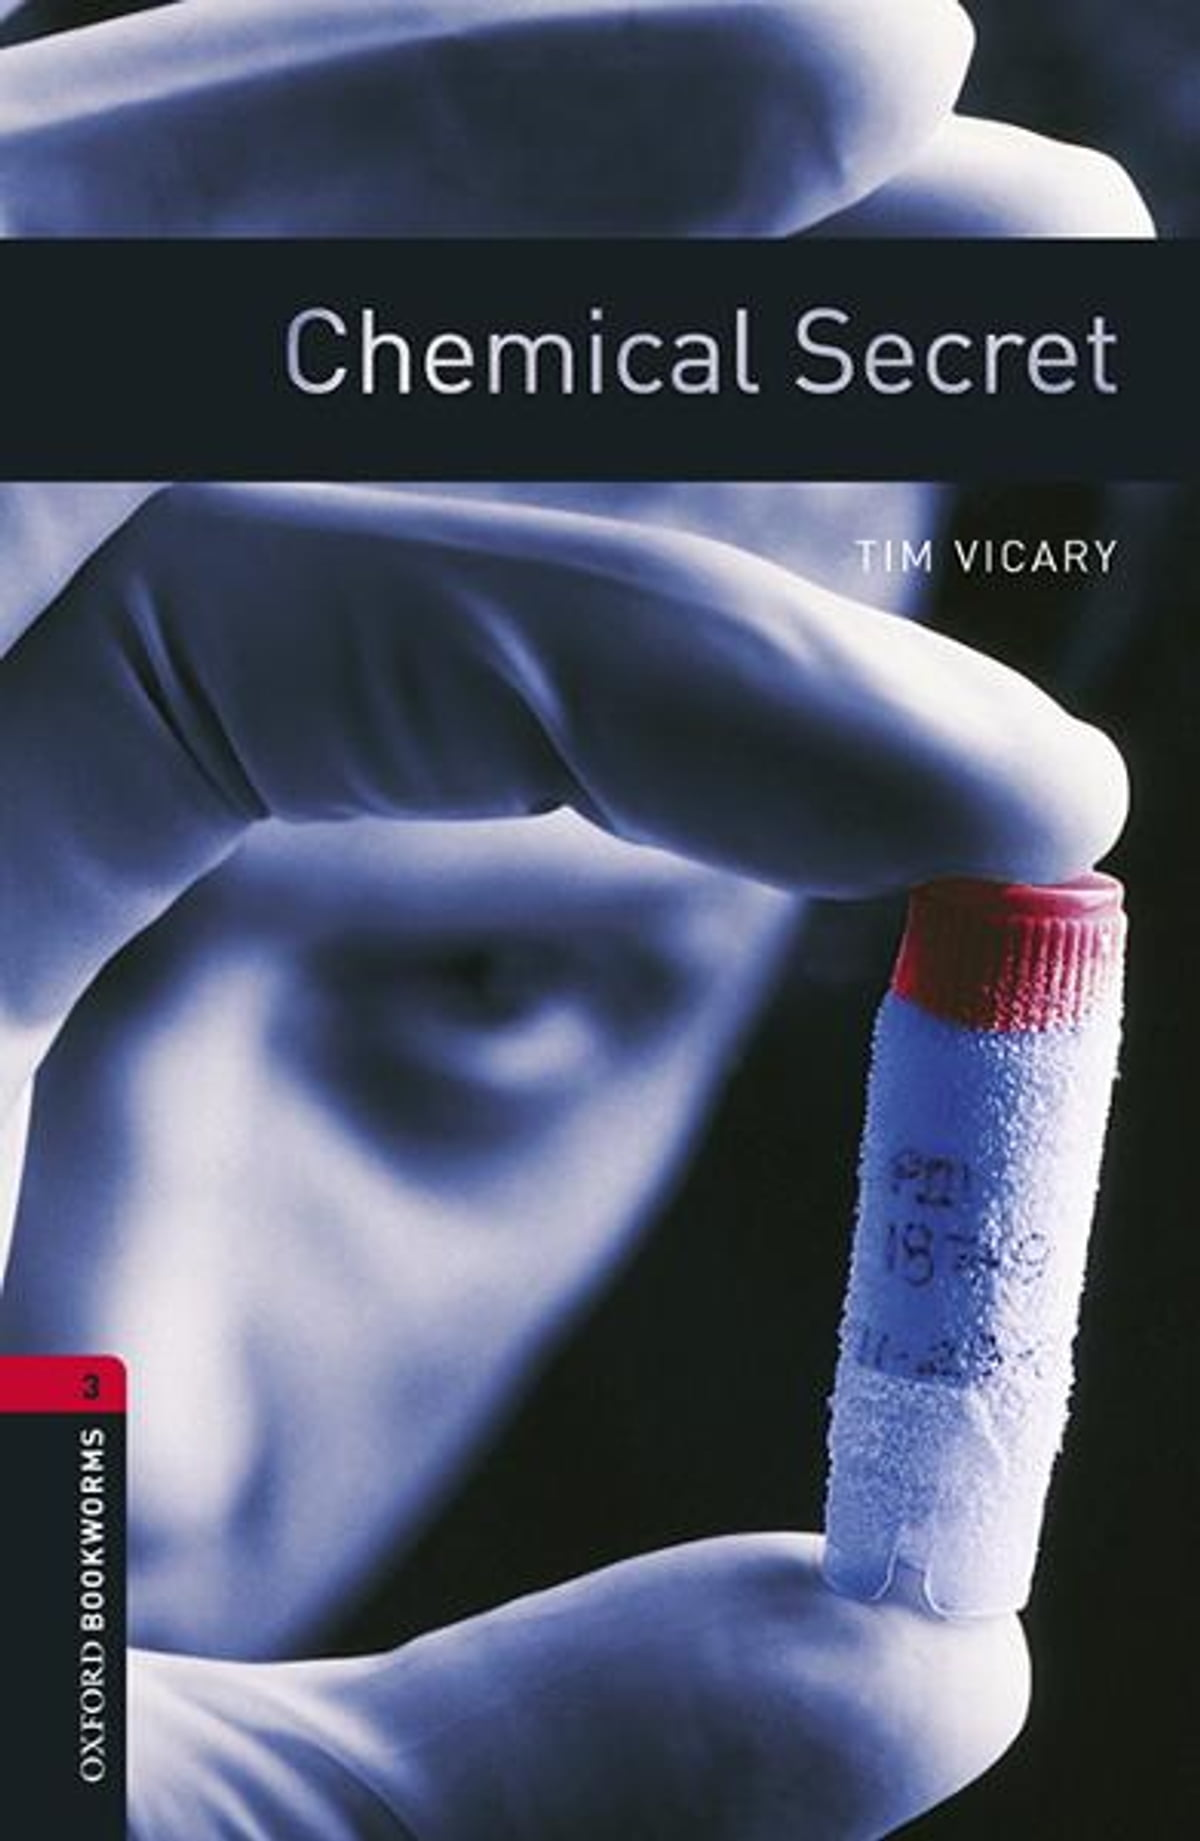 Oxford Bookworms Library Chemical Secret Level 3 Oxford Bookworms Library E Kitap